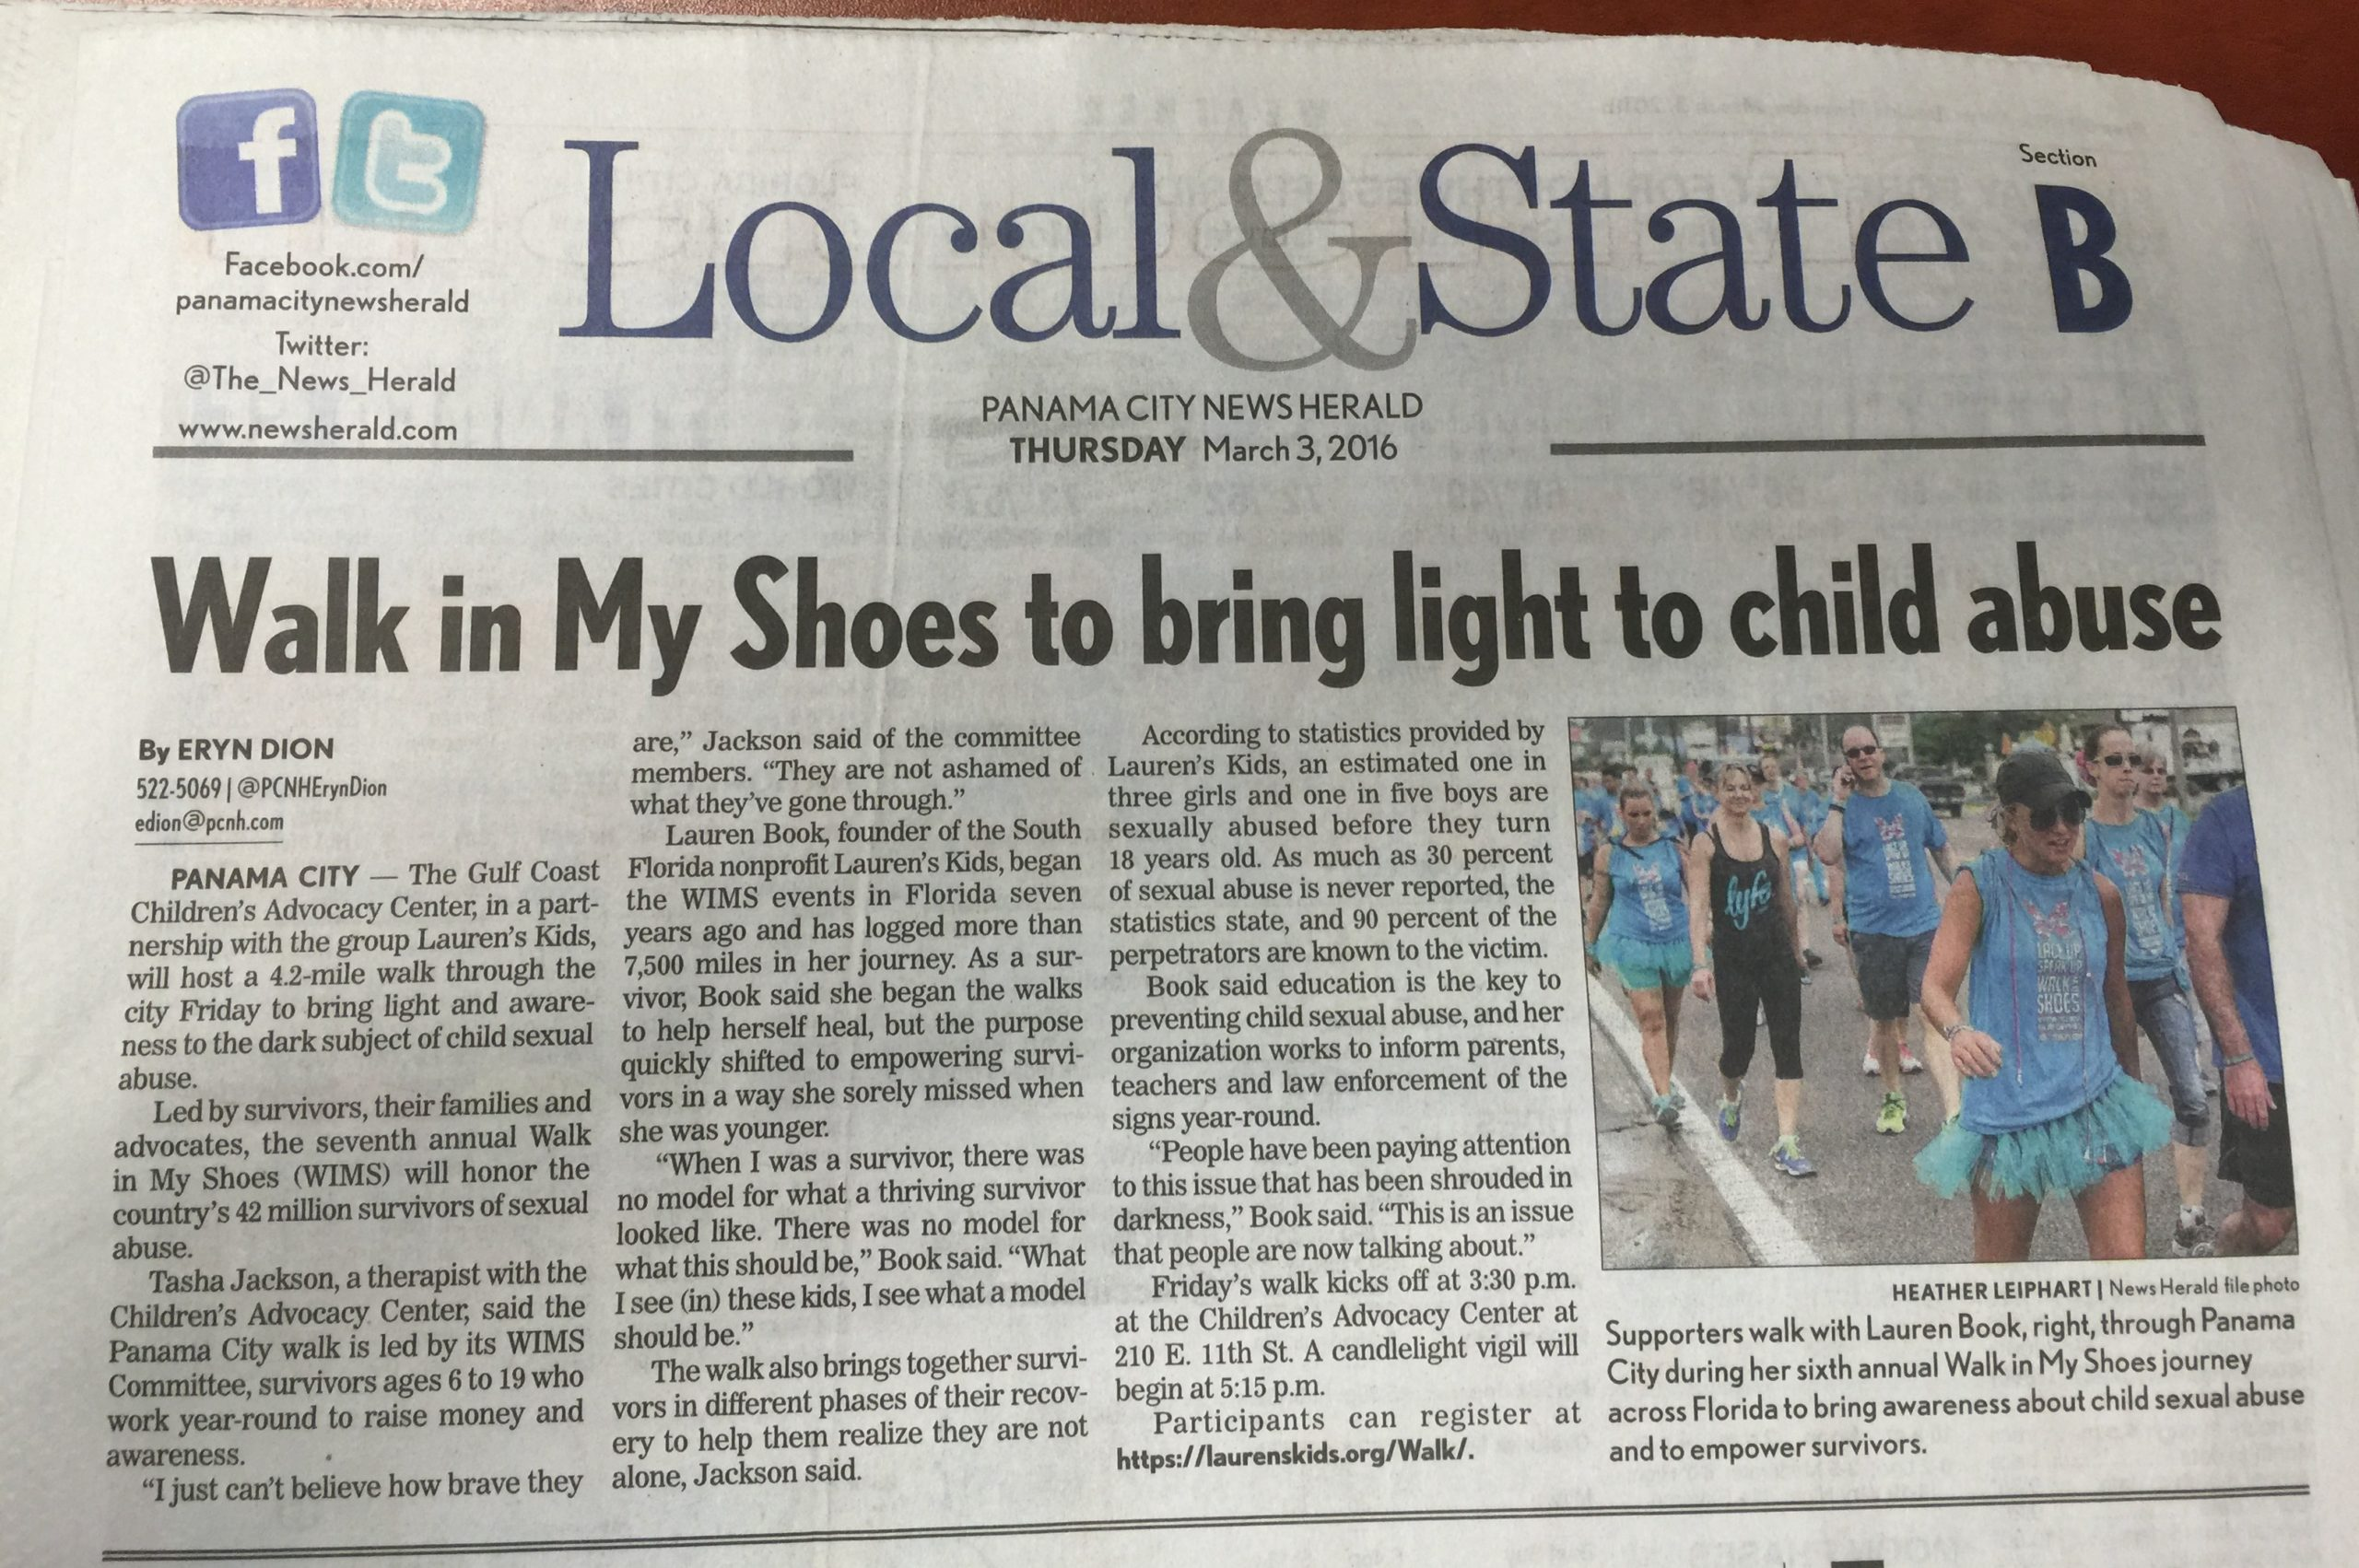 Bring Light to Child Abuse